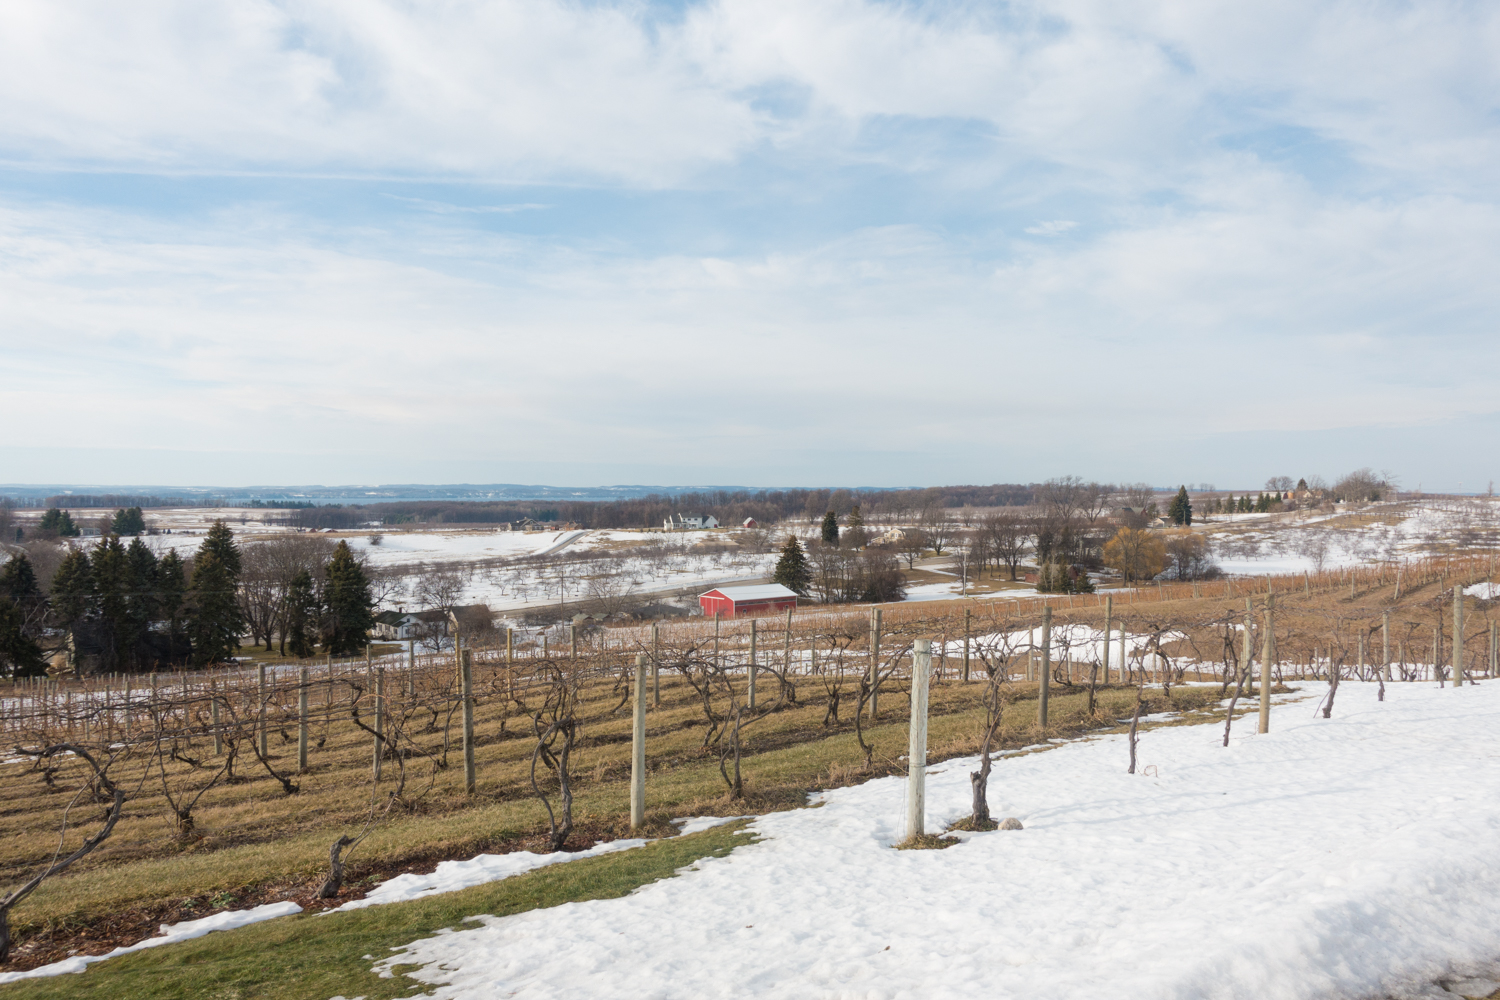 Chateau Chantal Ice Wine Harvest Festival #michigan #wine